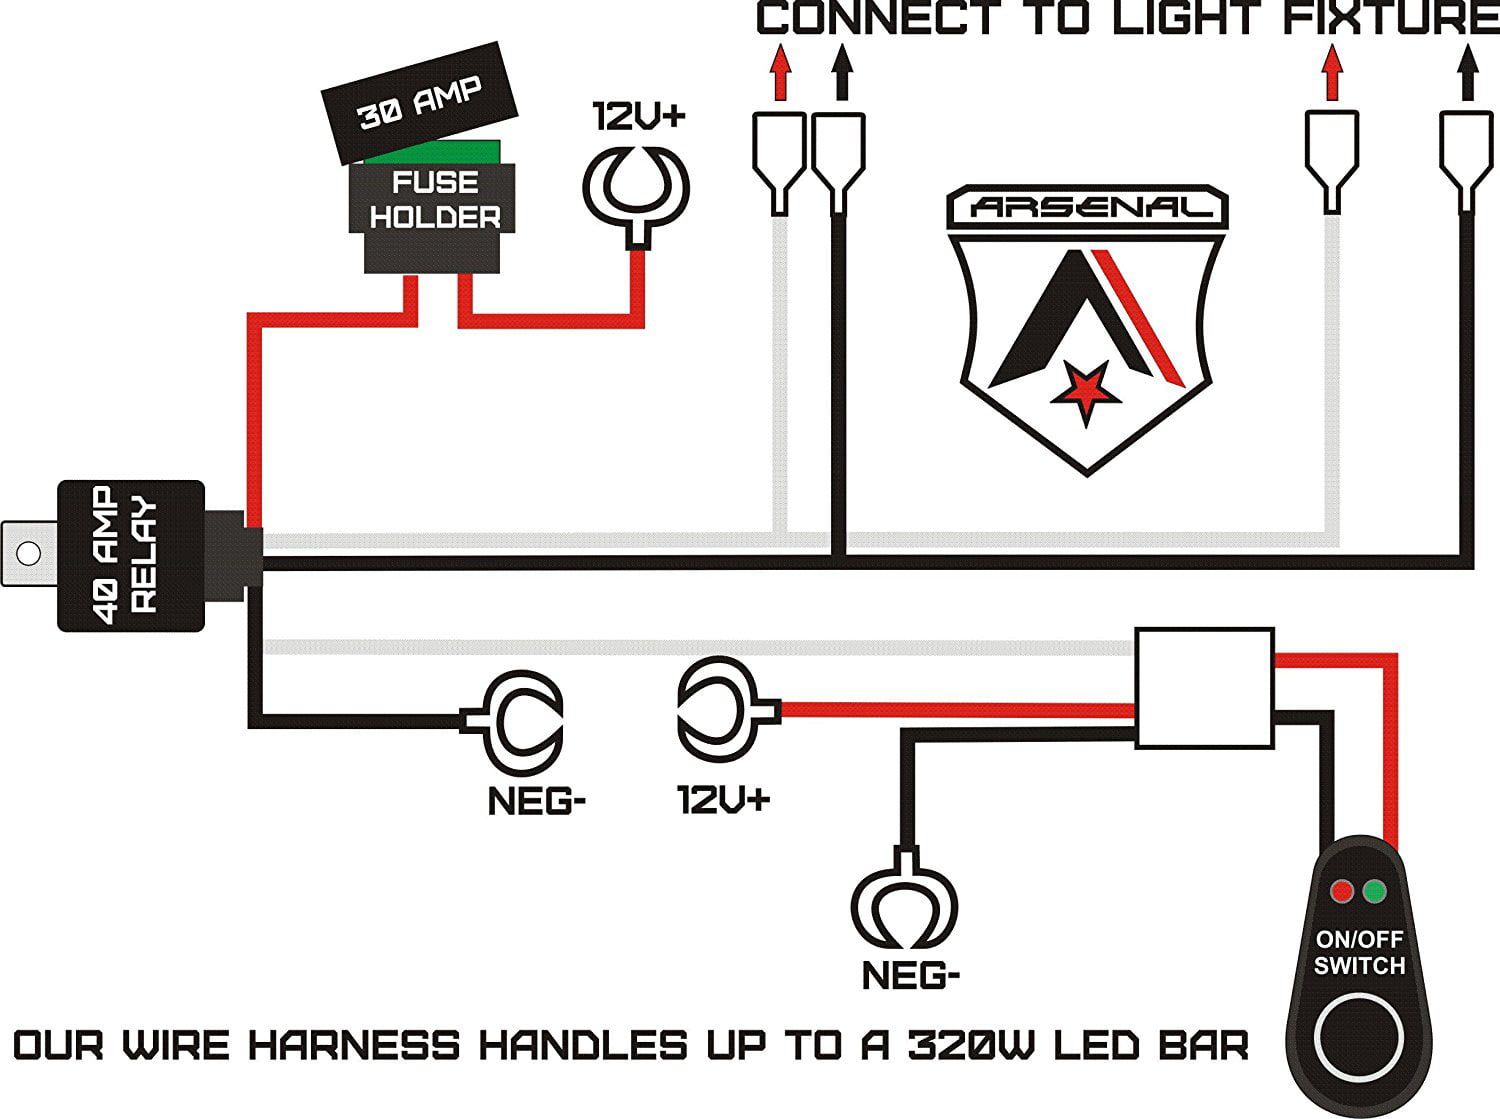 Diagram Warning Firefly Led Light Bar Wiring Diagram Full Version Hd Quality Wiring Diagram Diagramalderh Jodenjoy It